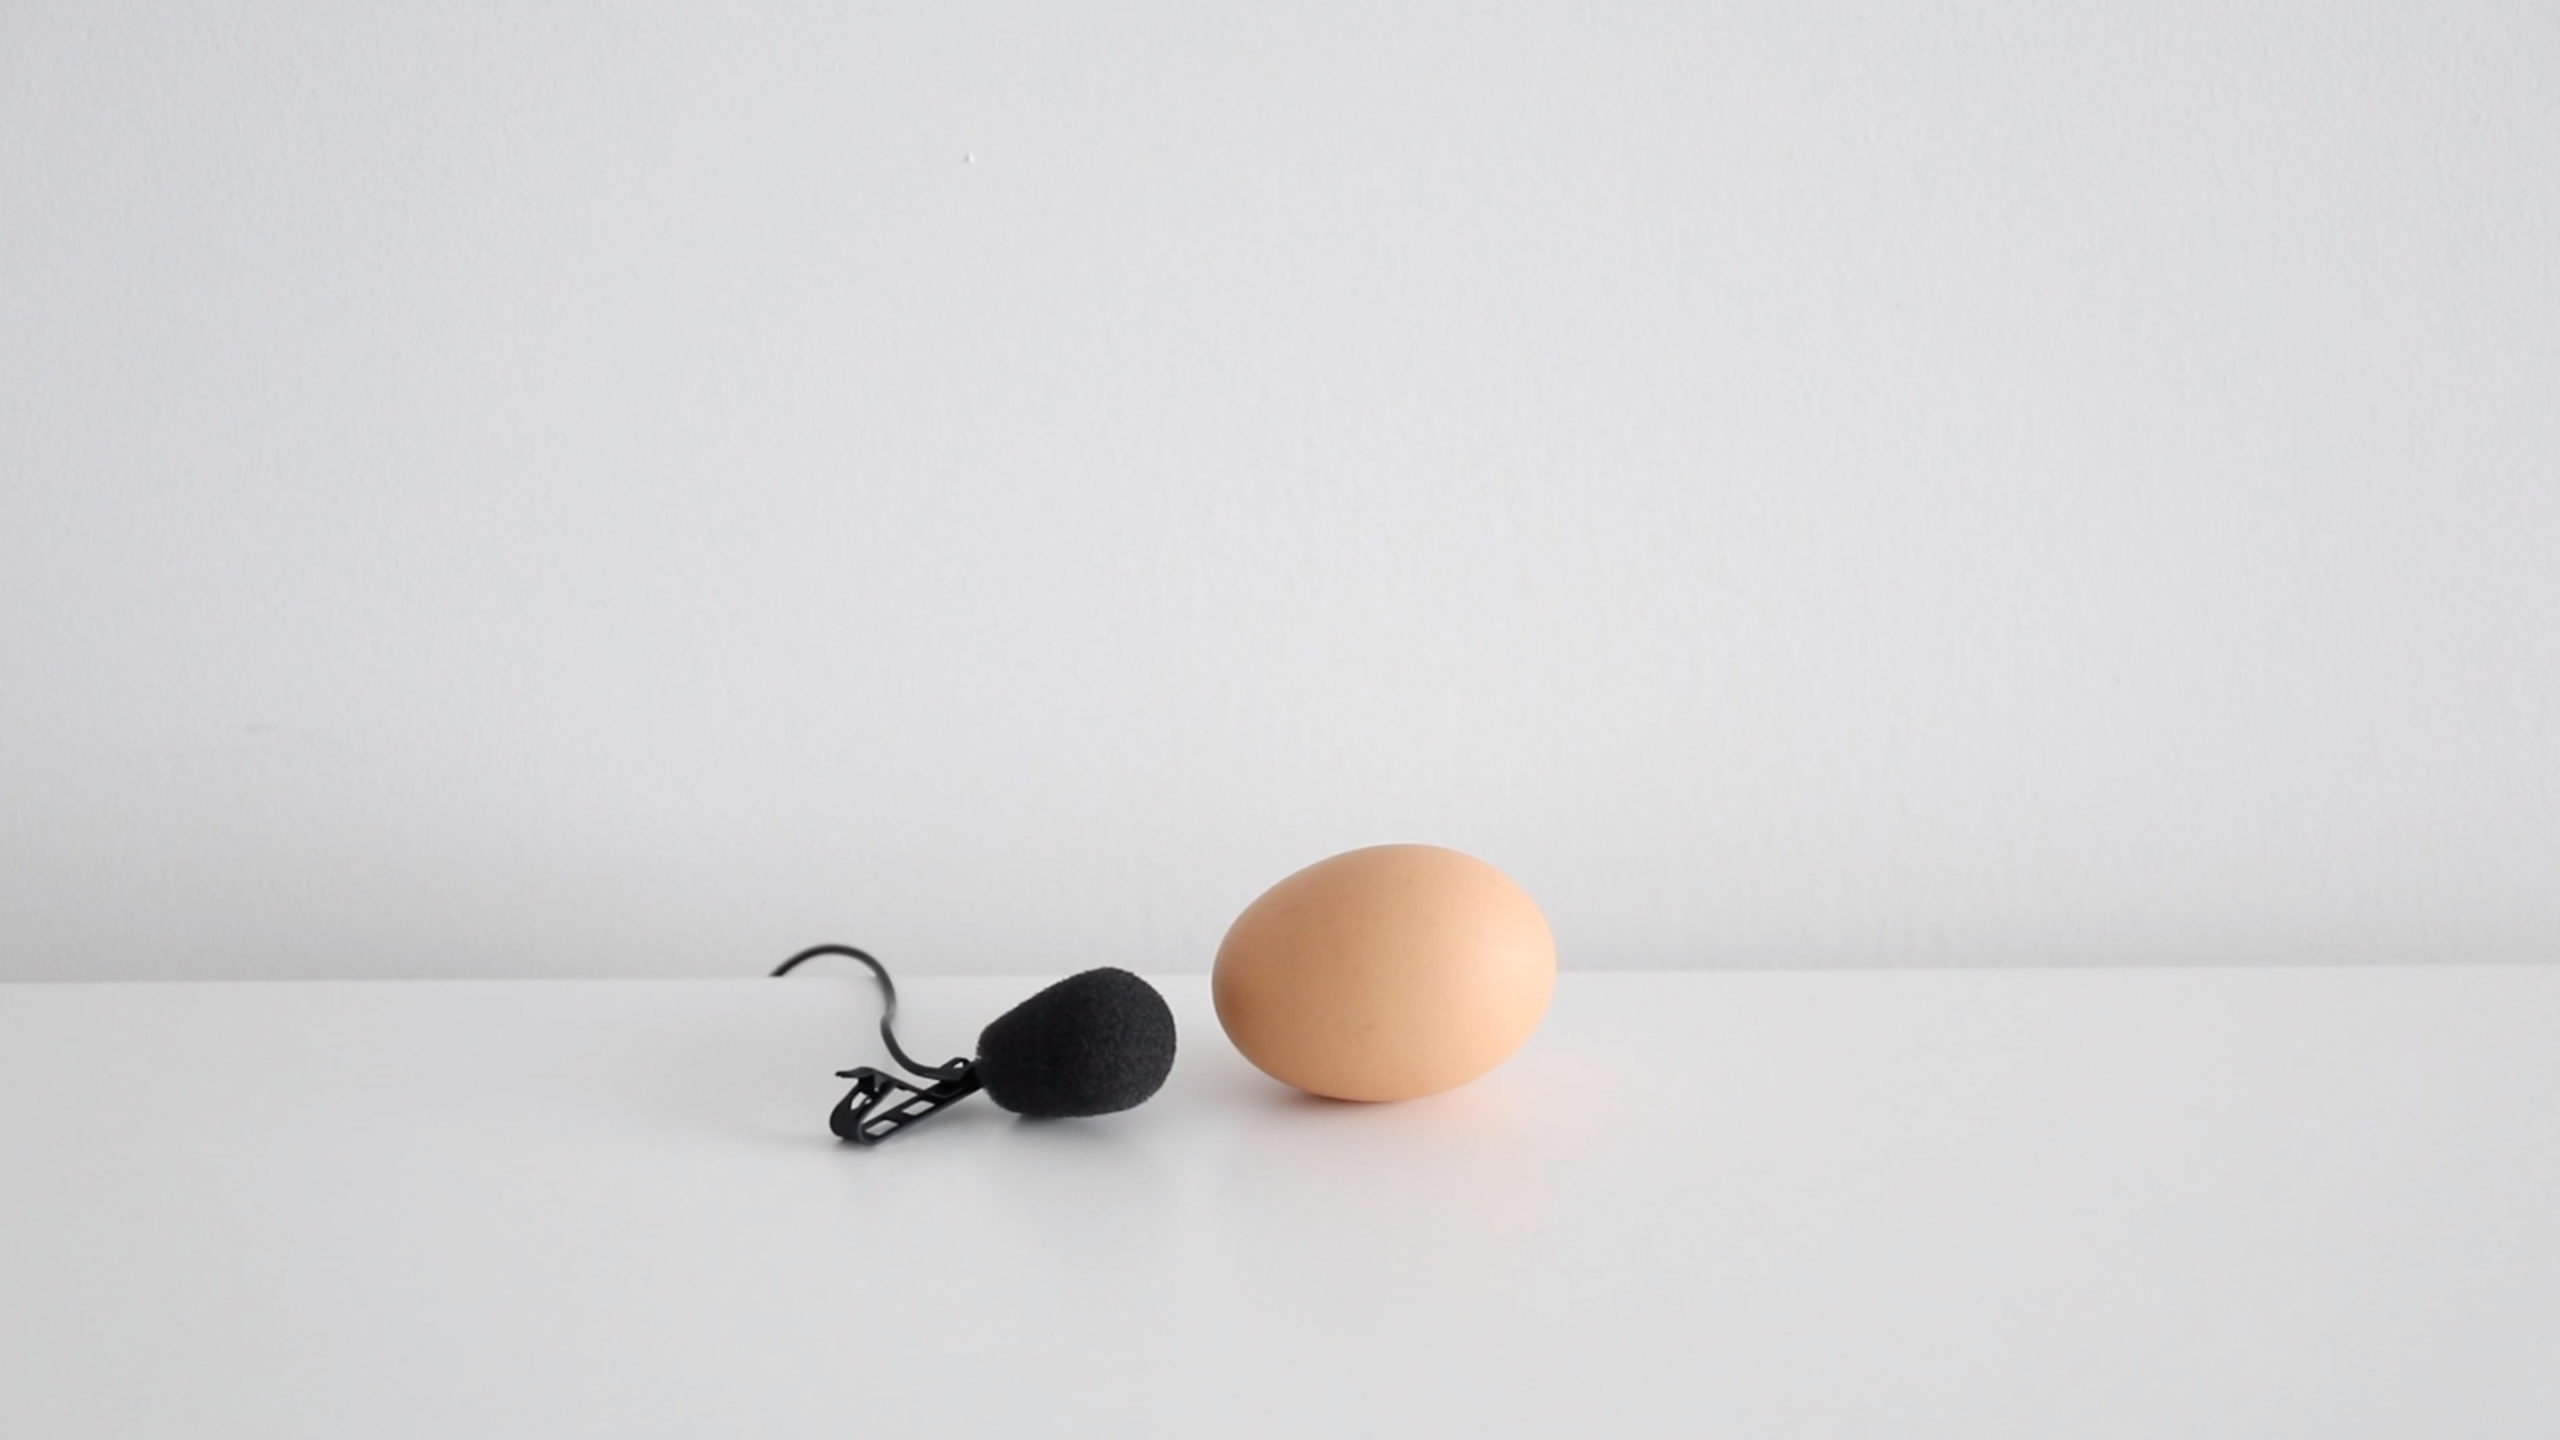 brown egg and microphone